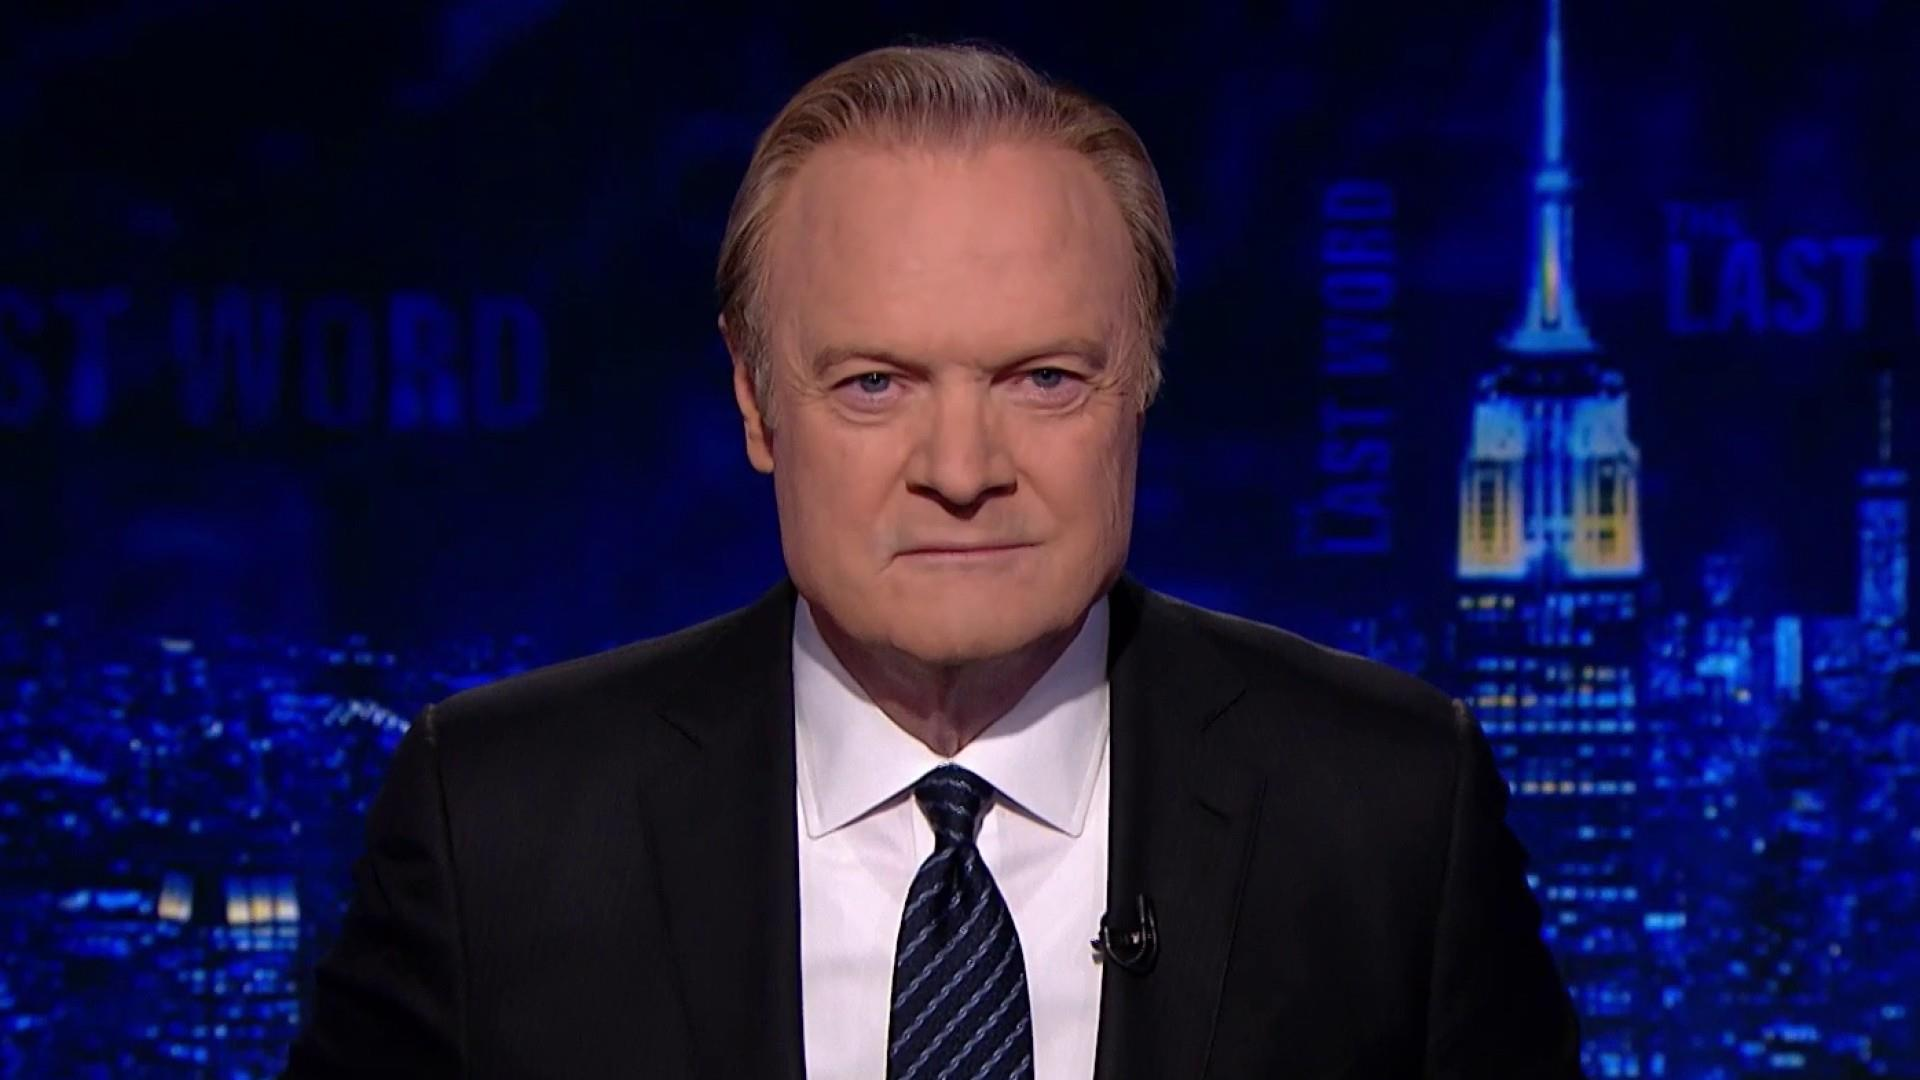 Lawrence:  Scaramucci is a proven fraud and liar